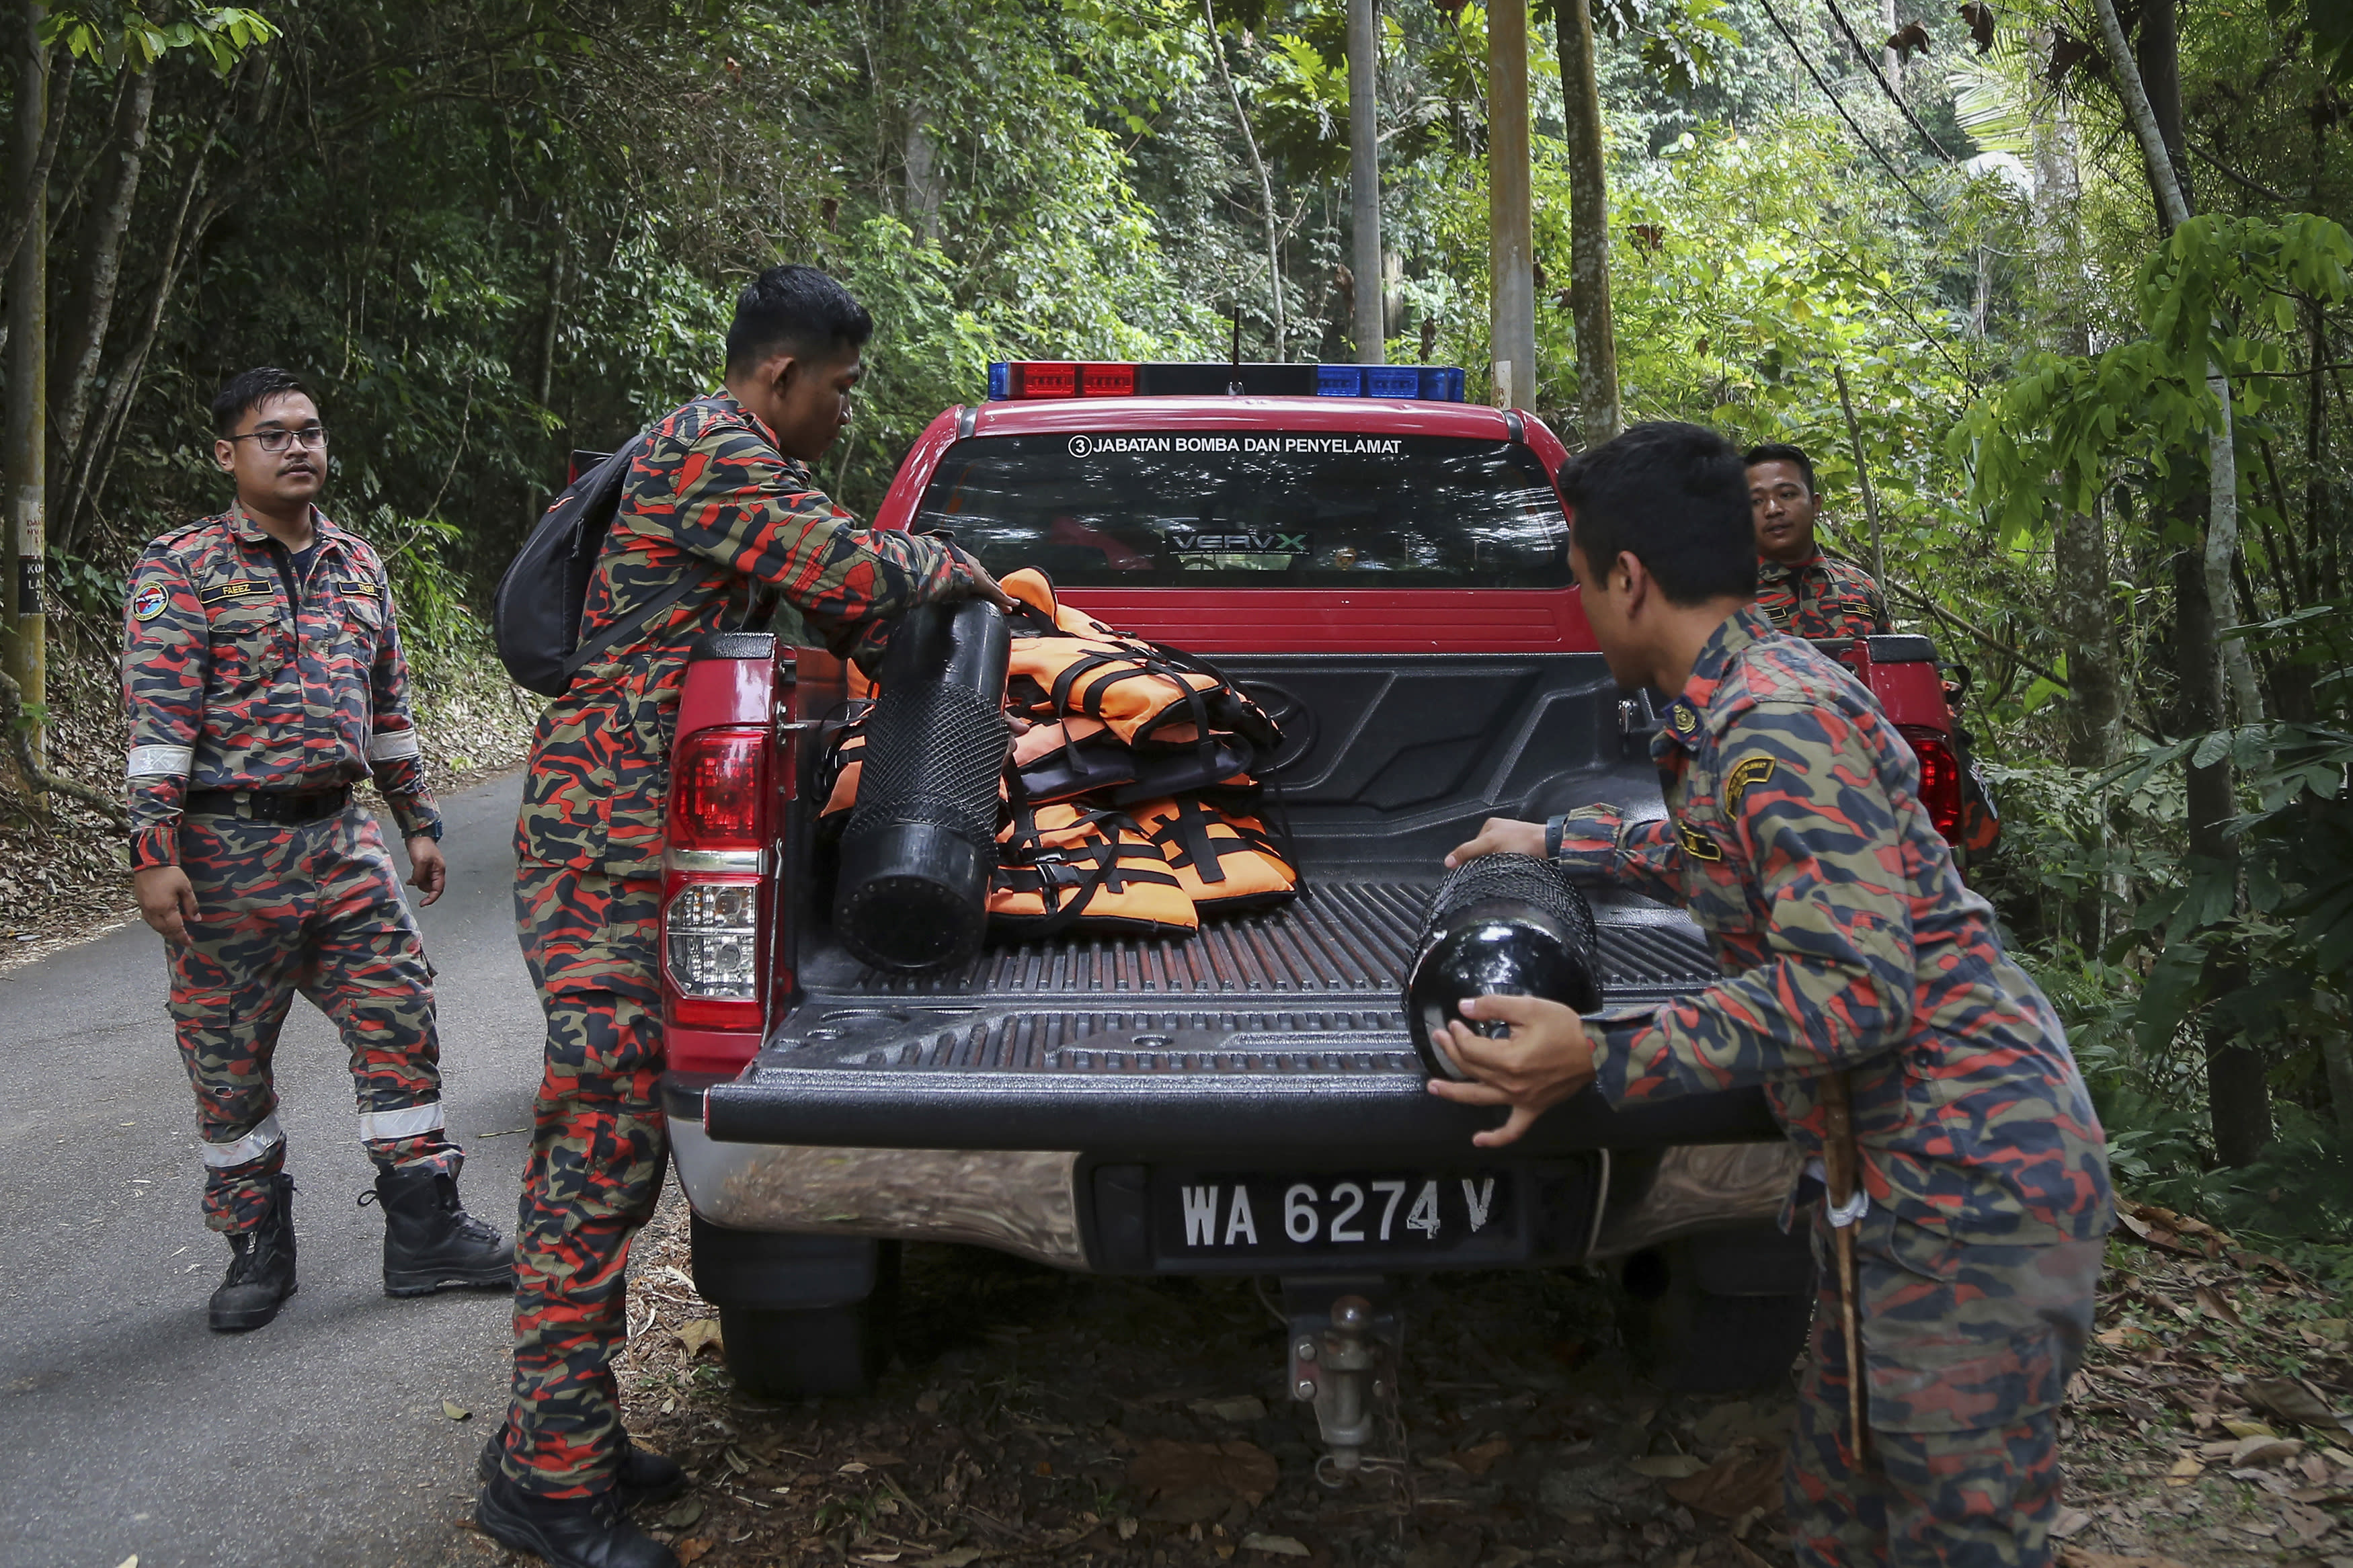 Malaysia probes criminal element in UK girl's disappearance